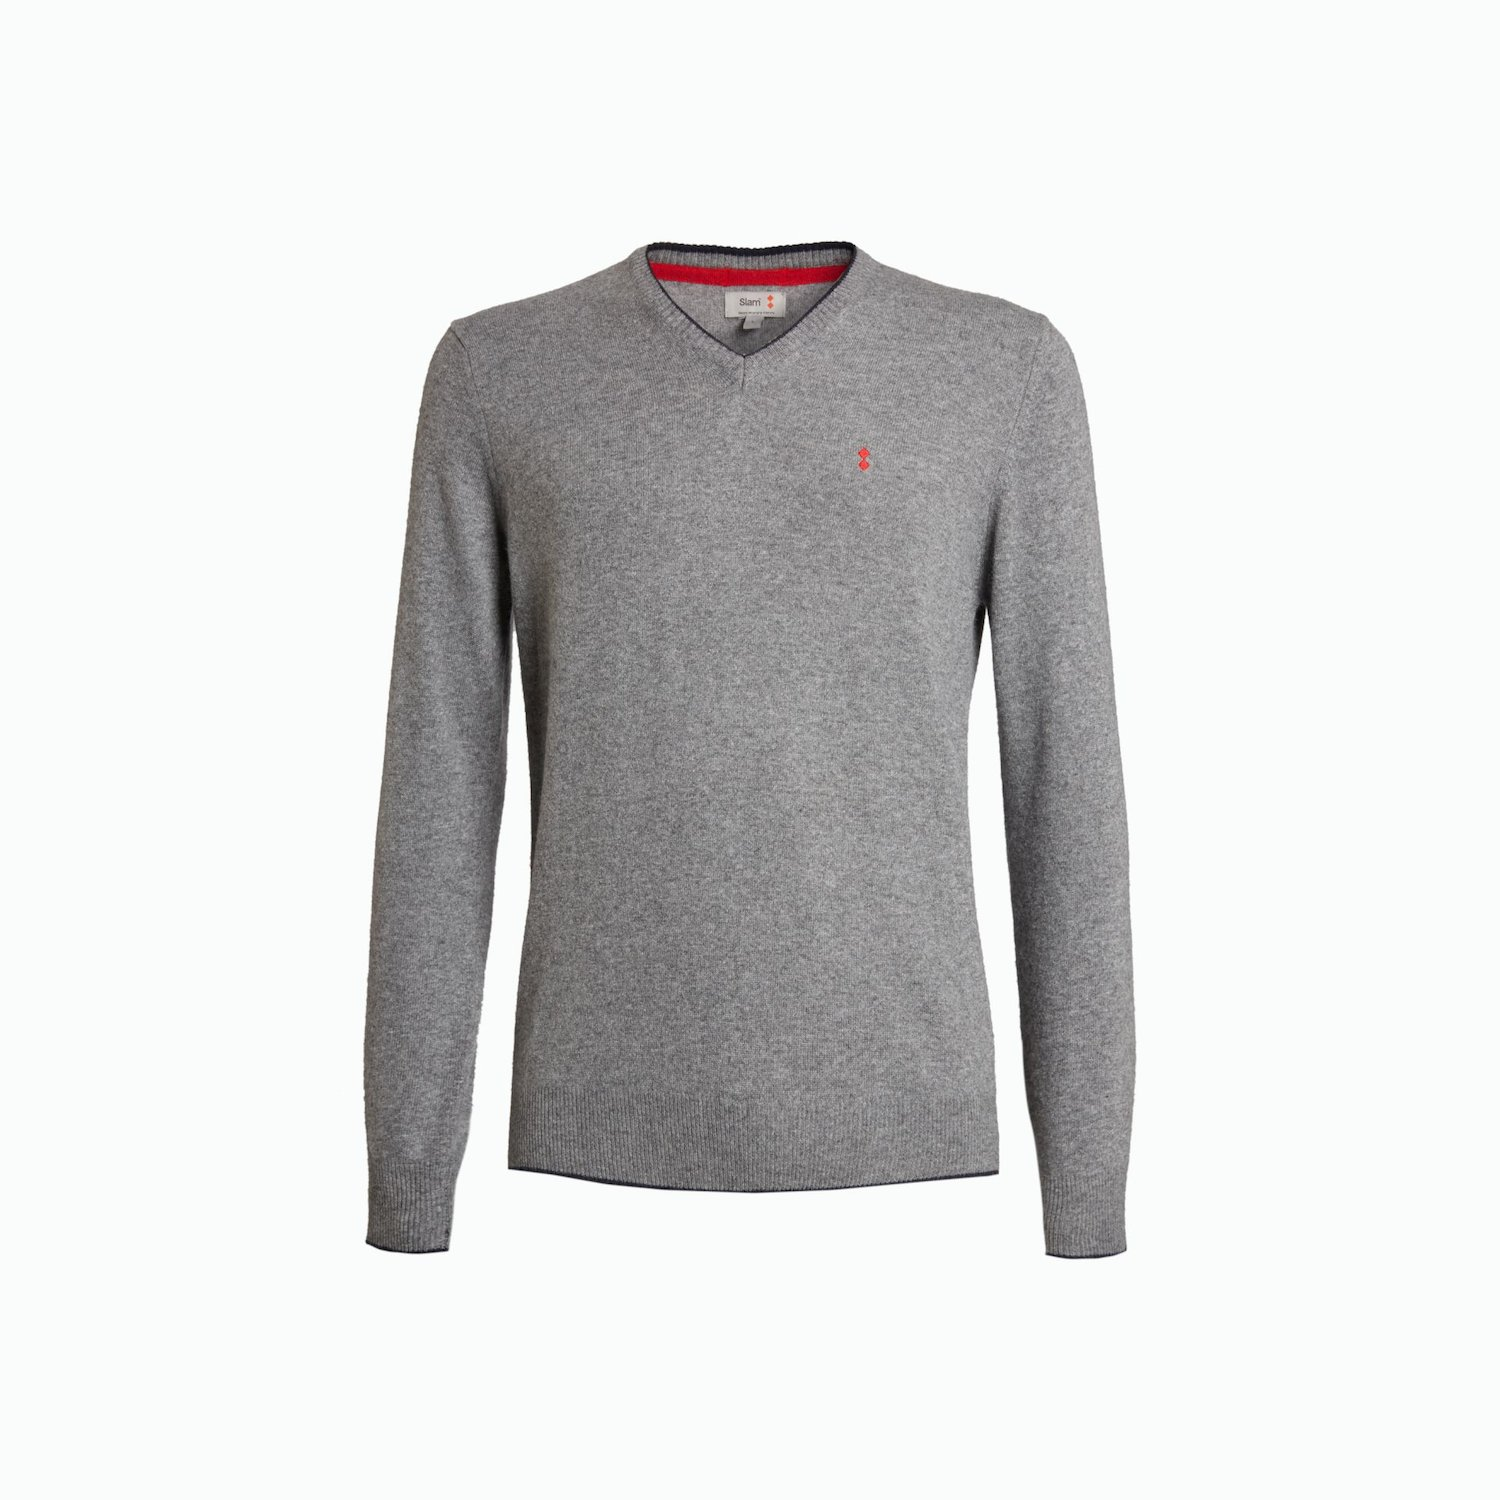 B134 sweater - Grey Melange